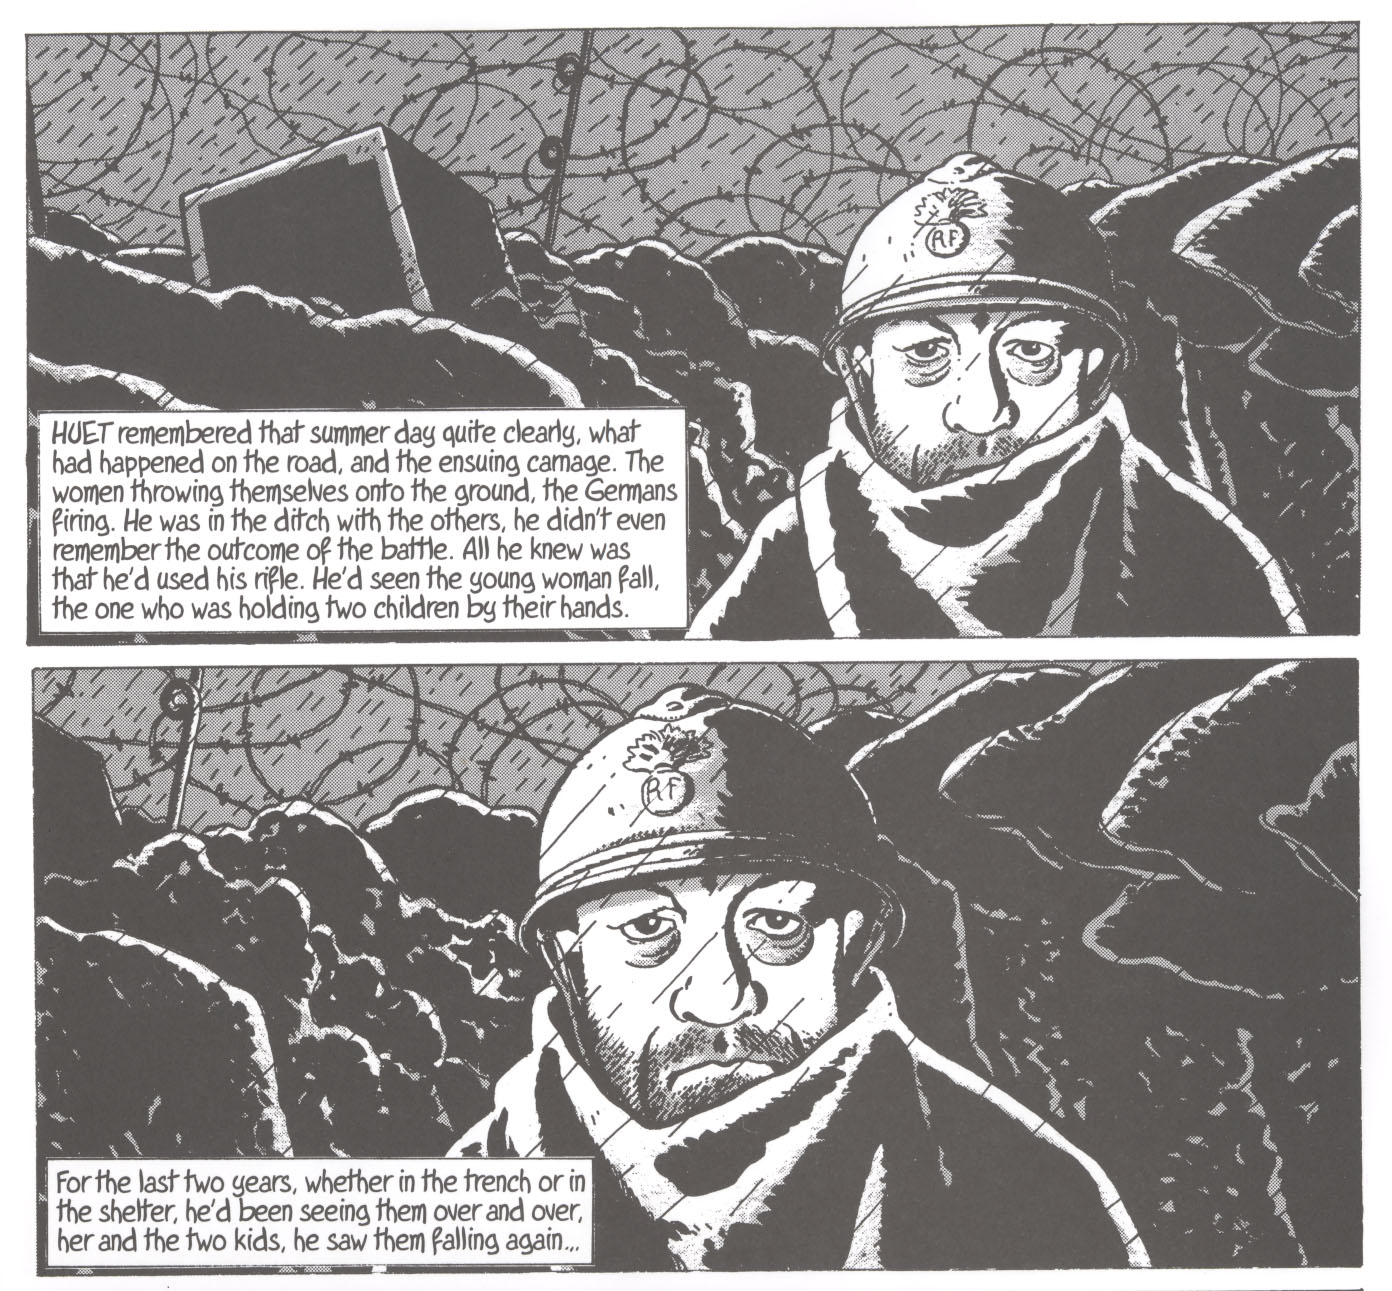 Trenches 2